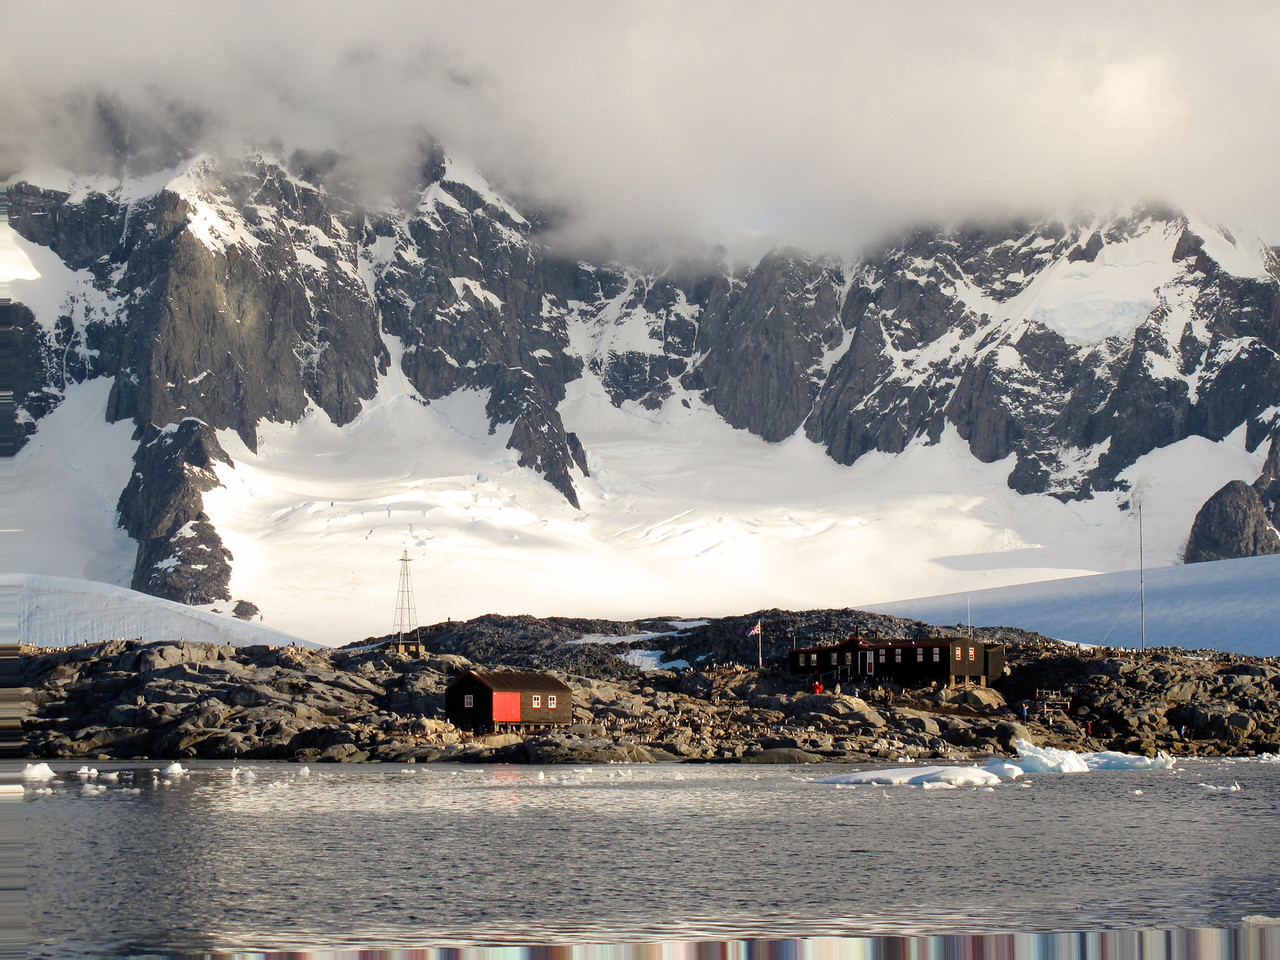 Port Lockroy was named after Edouard Lockroy, a French politician and Vice President of the Chamber of Deputies, who assisted Jean-Baptiste Charcot in obtaining government support for the French expedition.